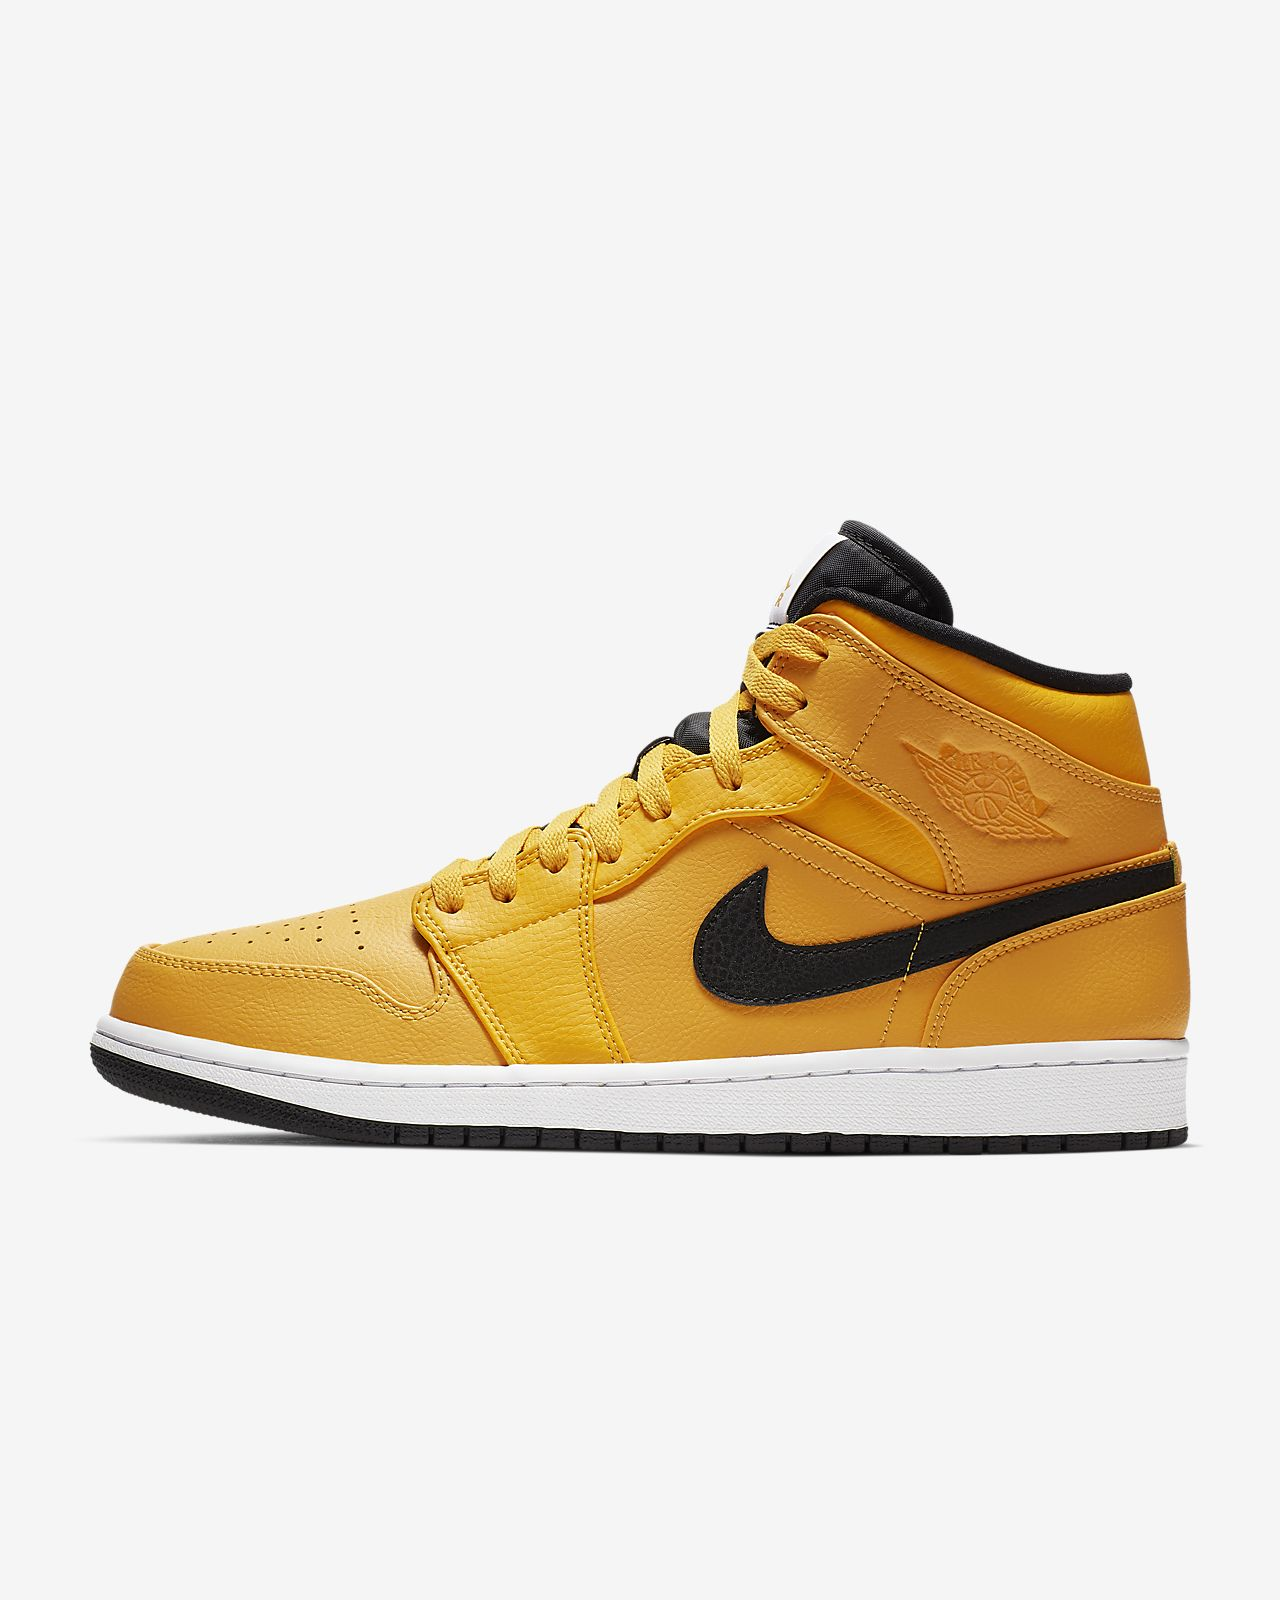 on sale a69a7 bcda1 Men s Shoe. Air Jordan 1 Mid